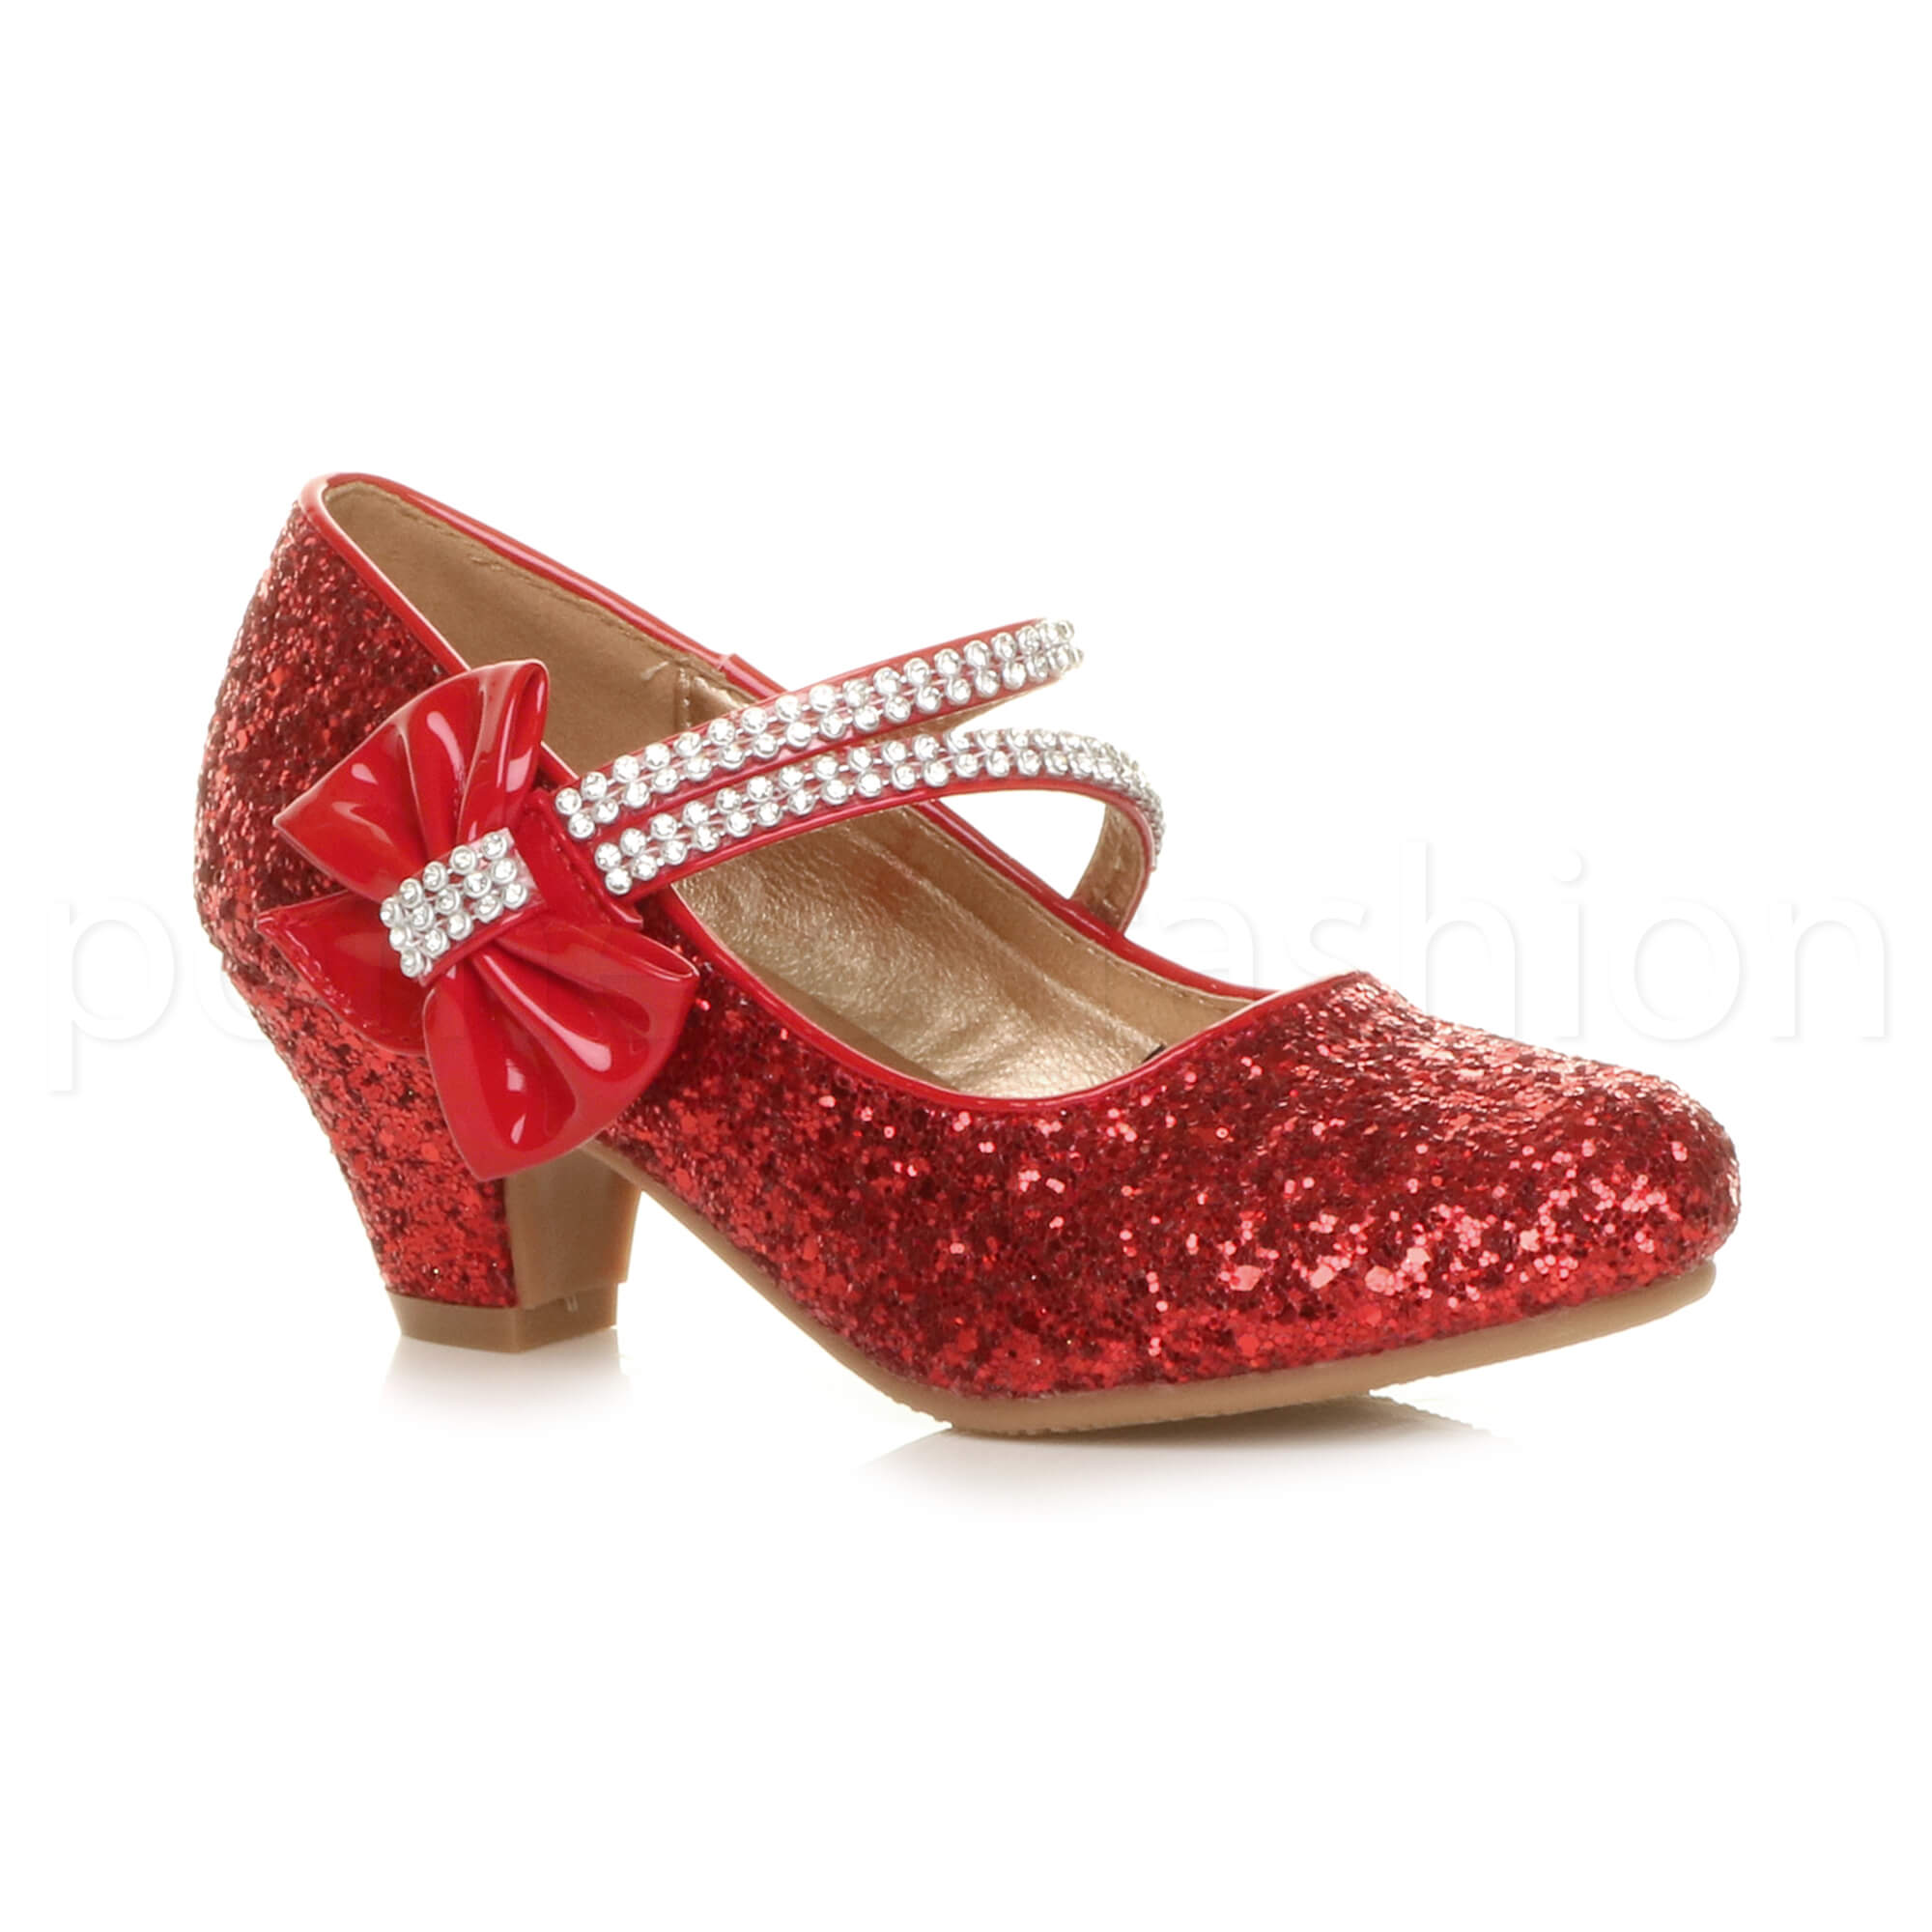 Christmas Shoes For Girls.Details About Girls Childrens Kids Party Wedding Bridesmaid Mary Jane Strap Sandals Shoes Size